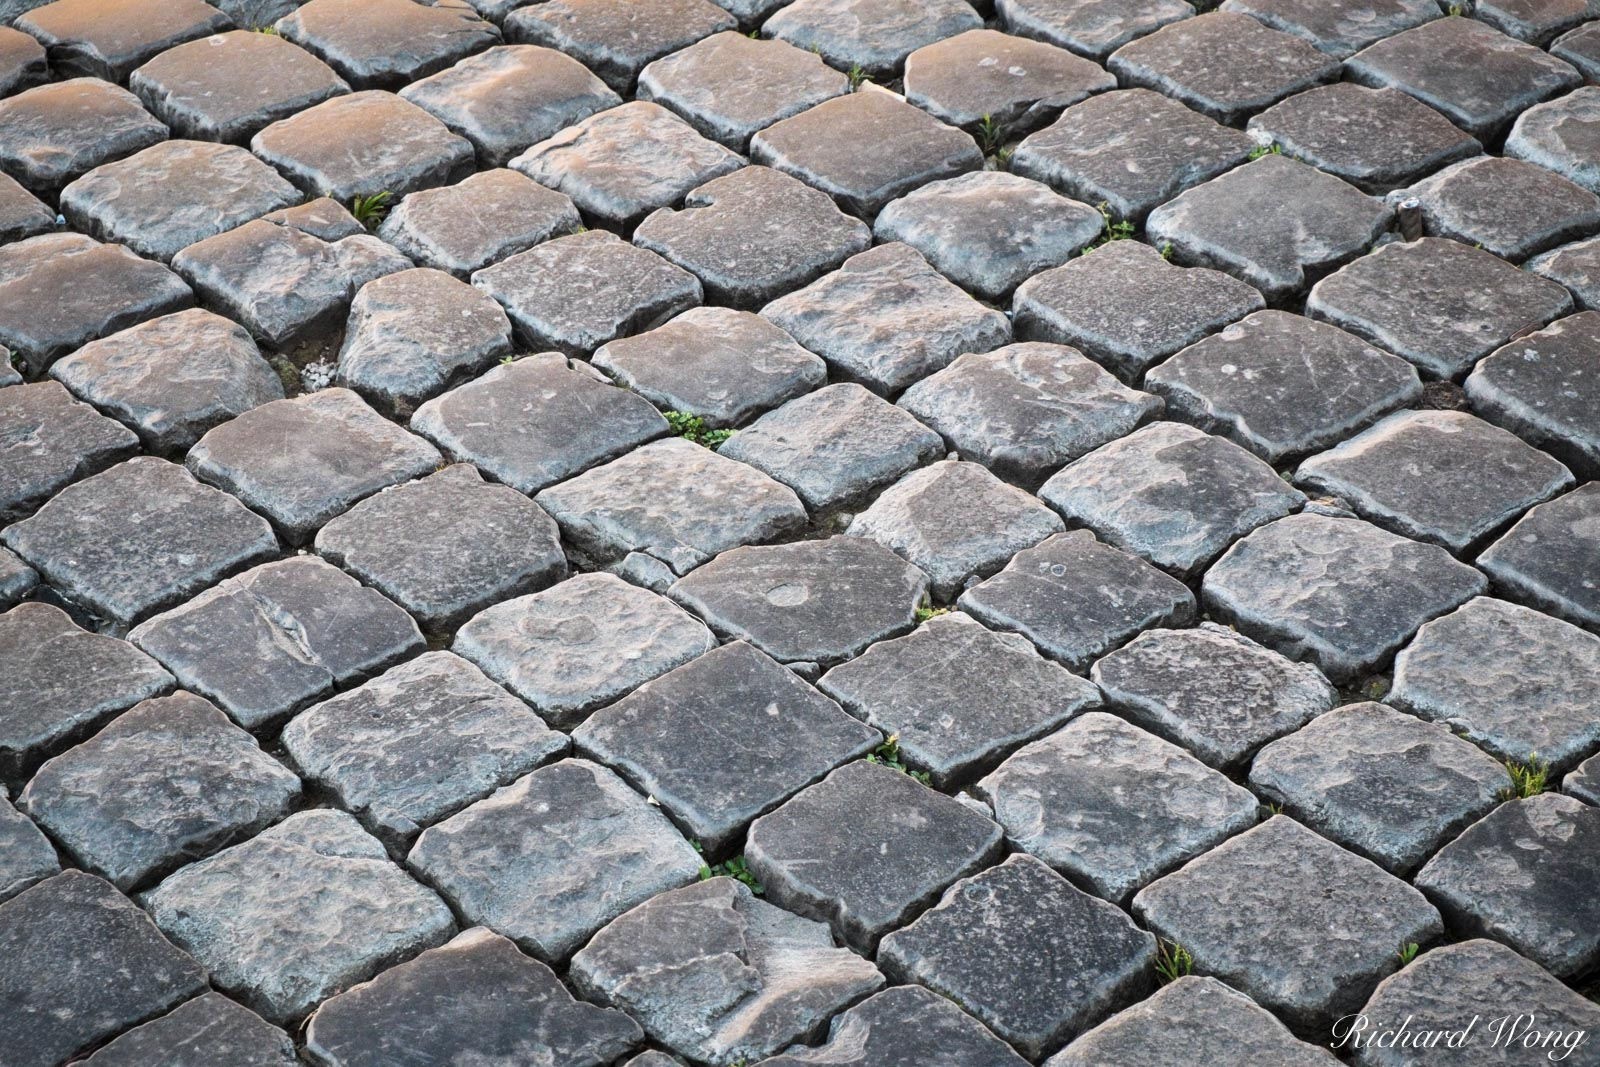 centro storico, city, cobblestone, europe, ground, historic site, italia, italy, lazio, navona square, outdoors, outside, patterned, patterns, piazza navona, road, roma, rome, street, travel, unesco w, photo